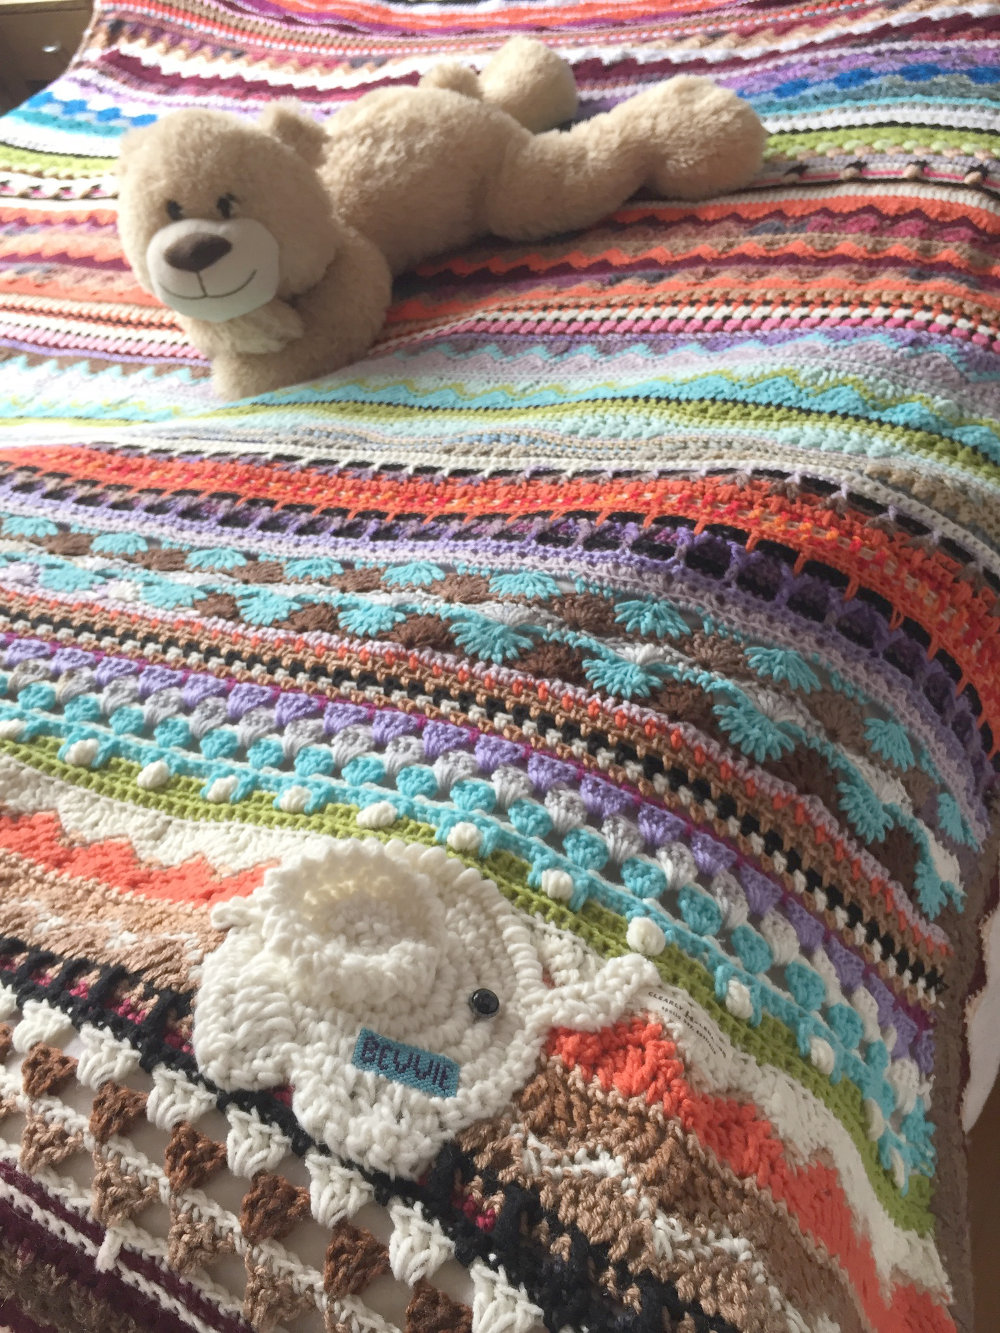 Crochet Afghan Blanket For Bev Ch0499 Clearlyhelena